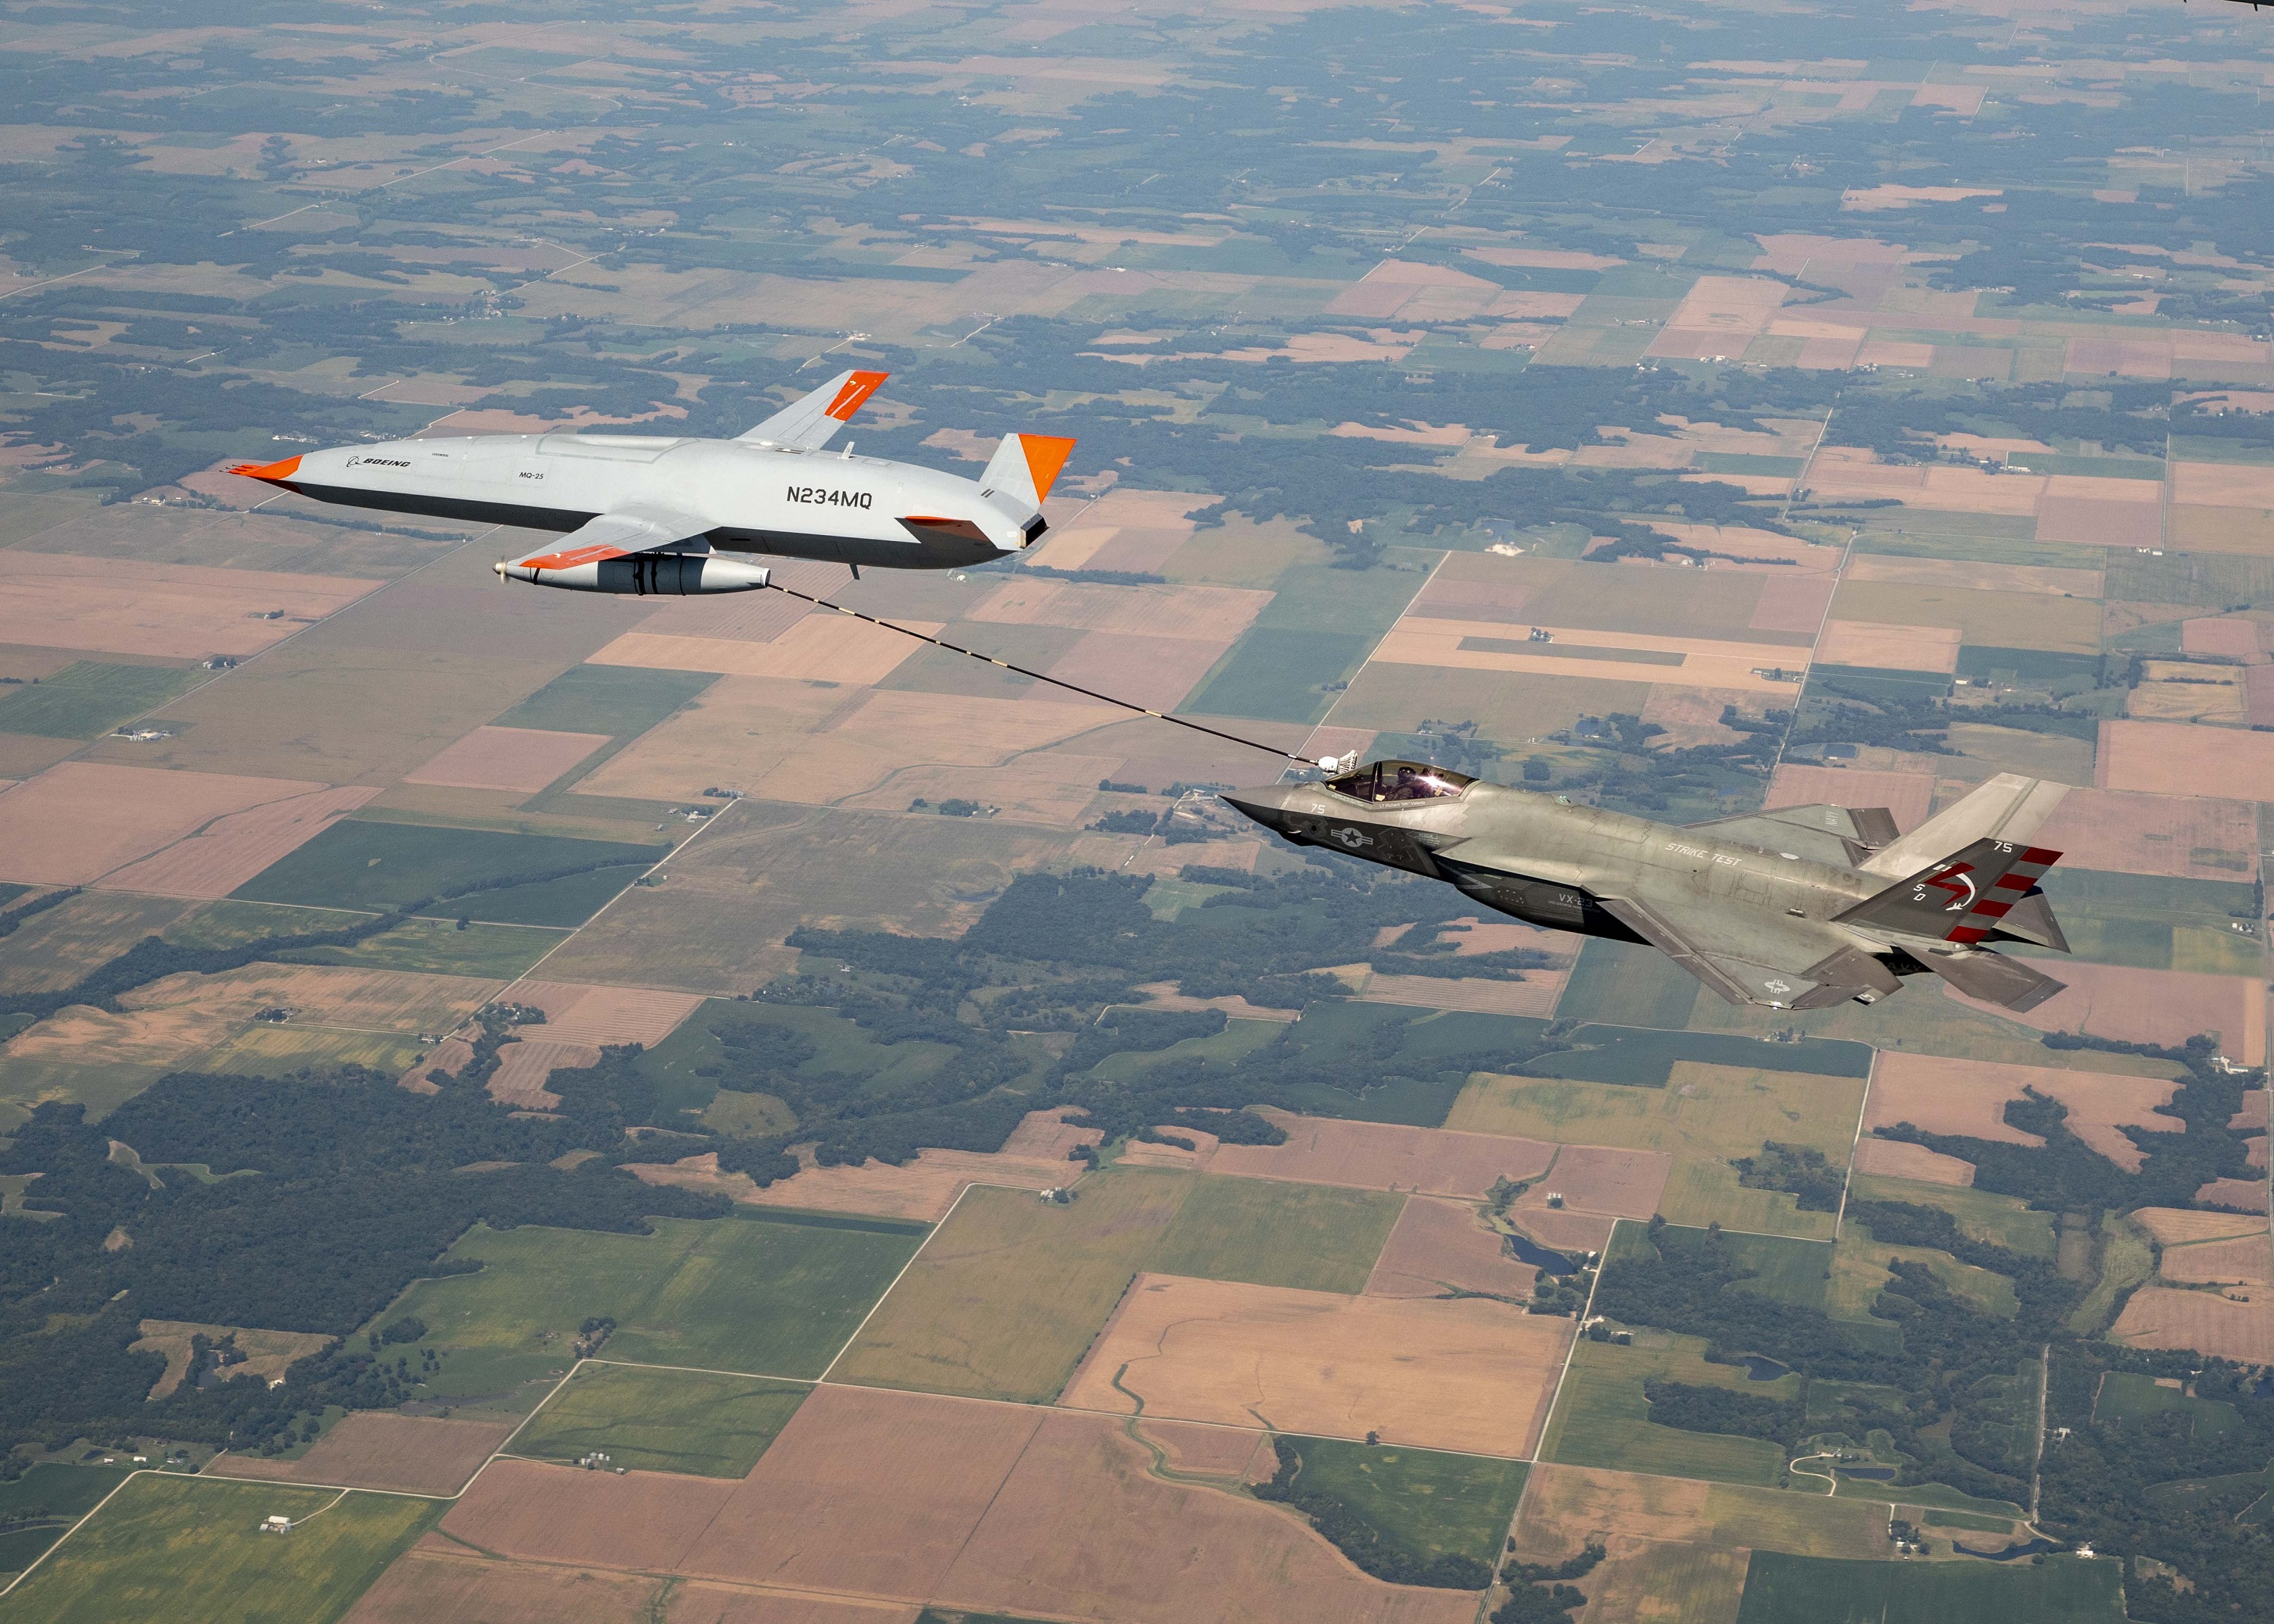 The F-35C taking on fuel from the MQ-25